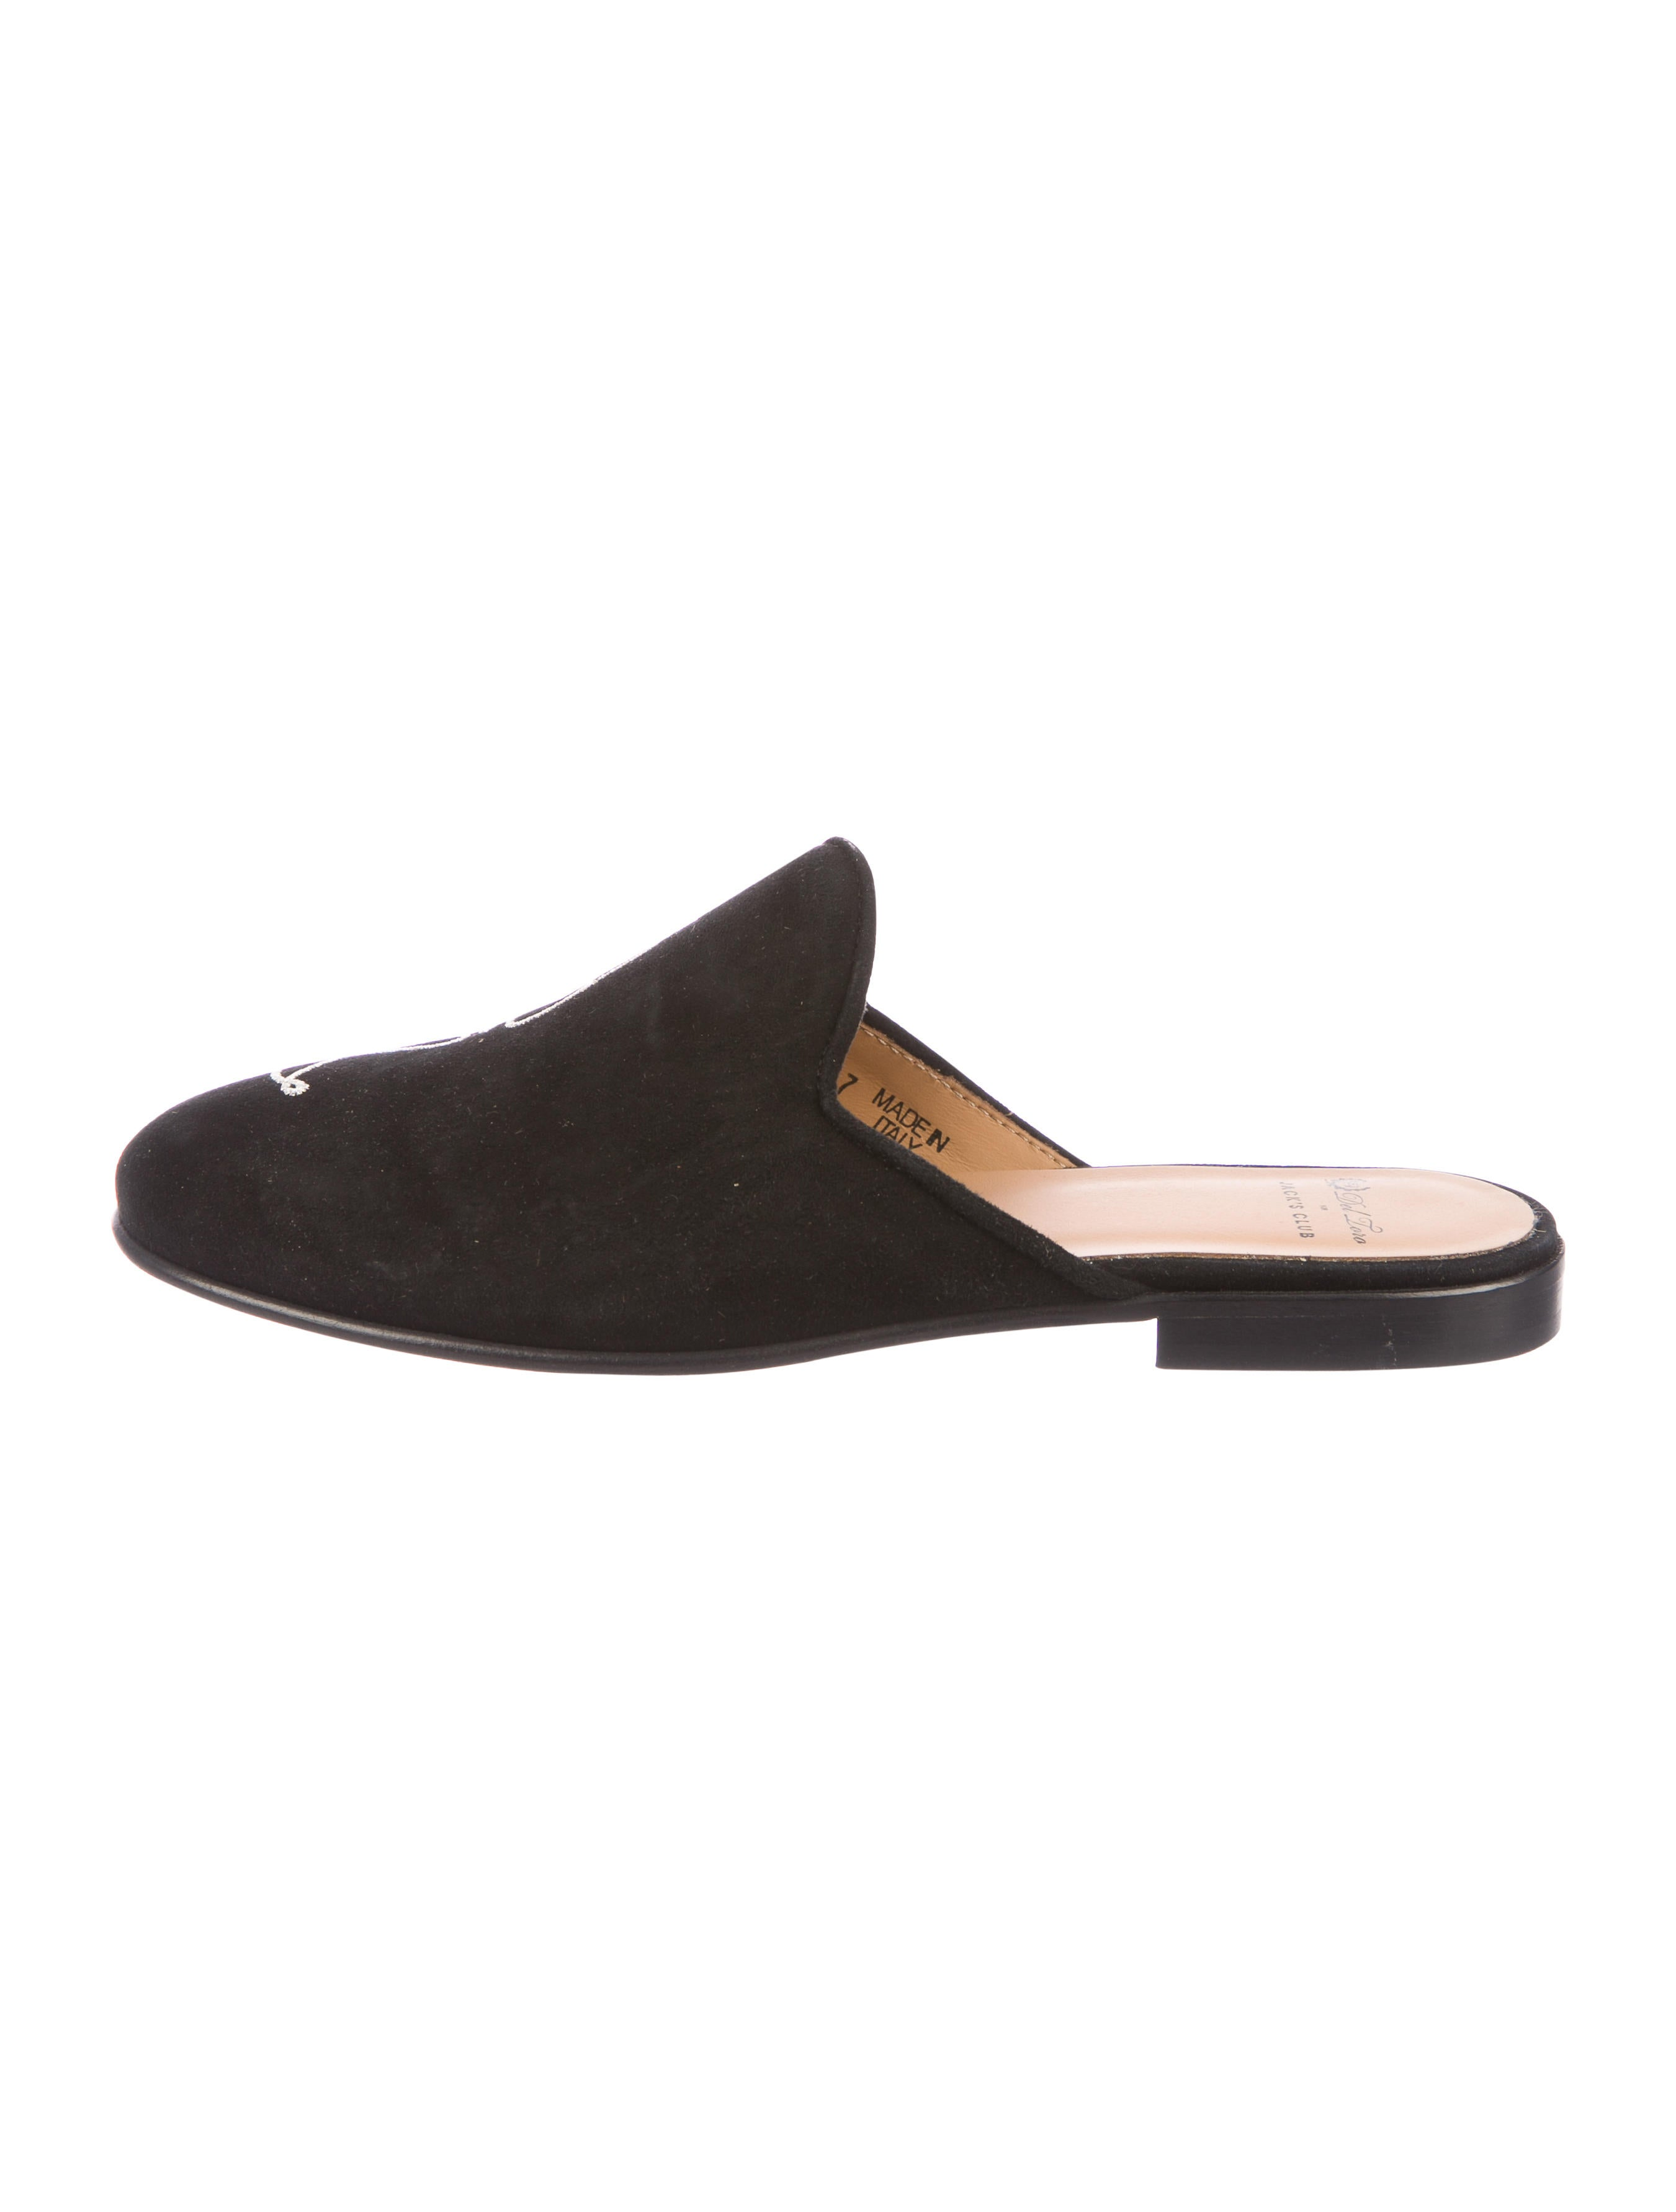 Del Toro Suede Round-Toe Mules collections cheap online sale release dates for cheap sale online discount under $60 LvSogcpuk